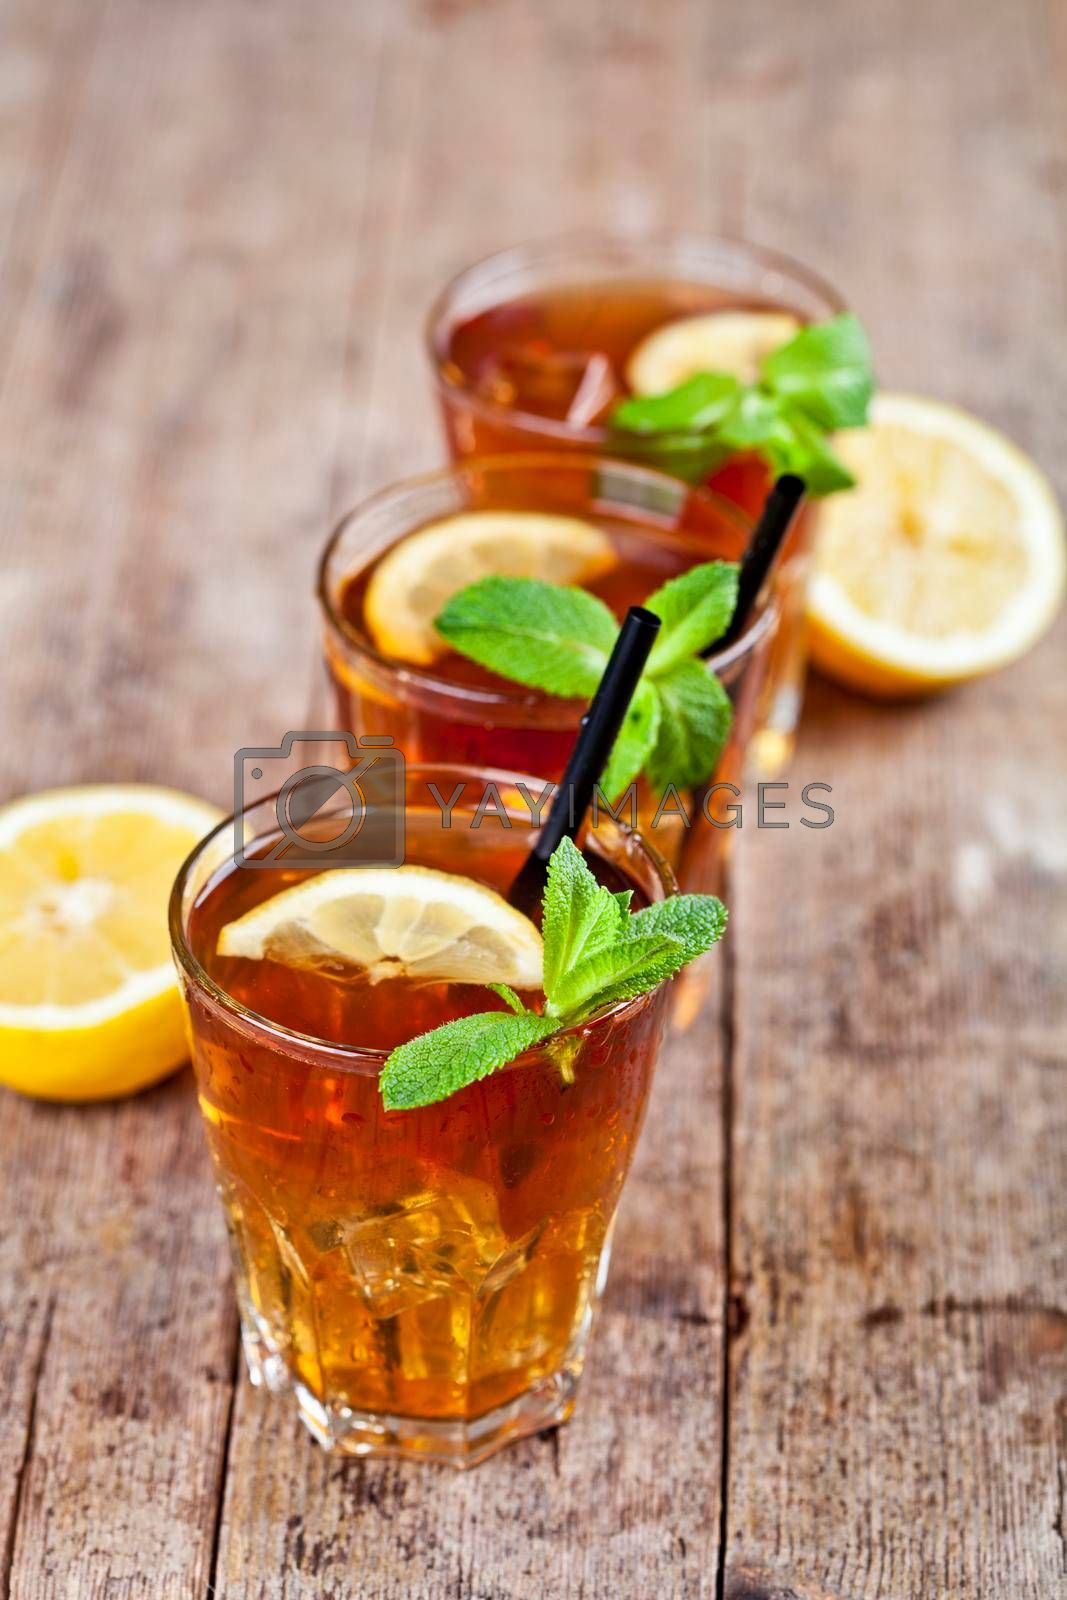 Cold iced tea with lemon, mint leaves and ice cubes in three glasses on rustic wooden table background.